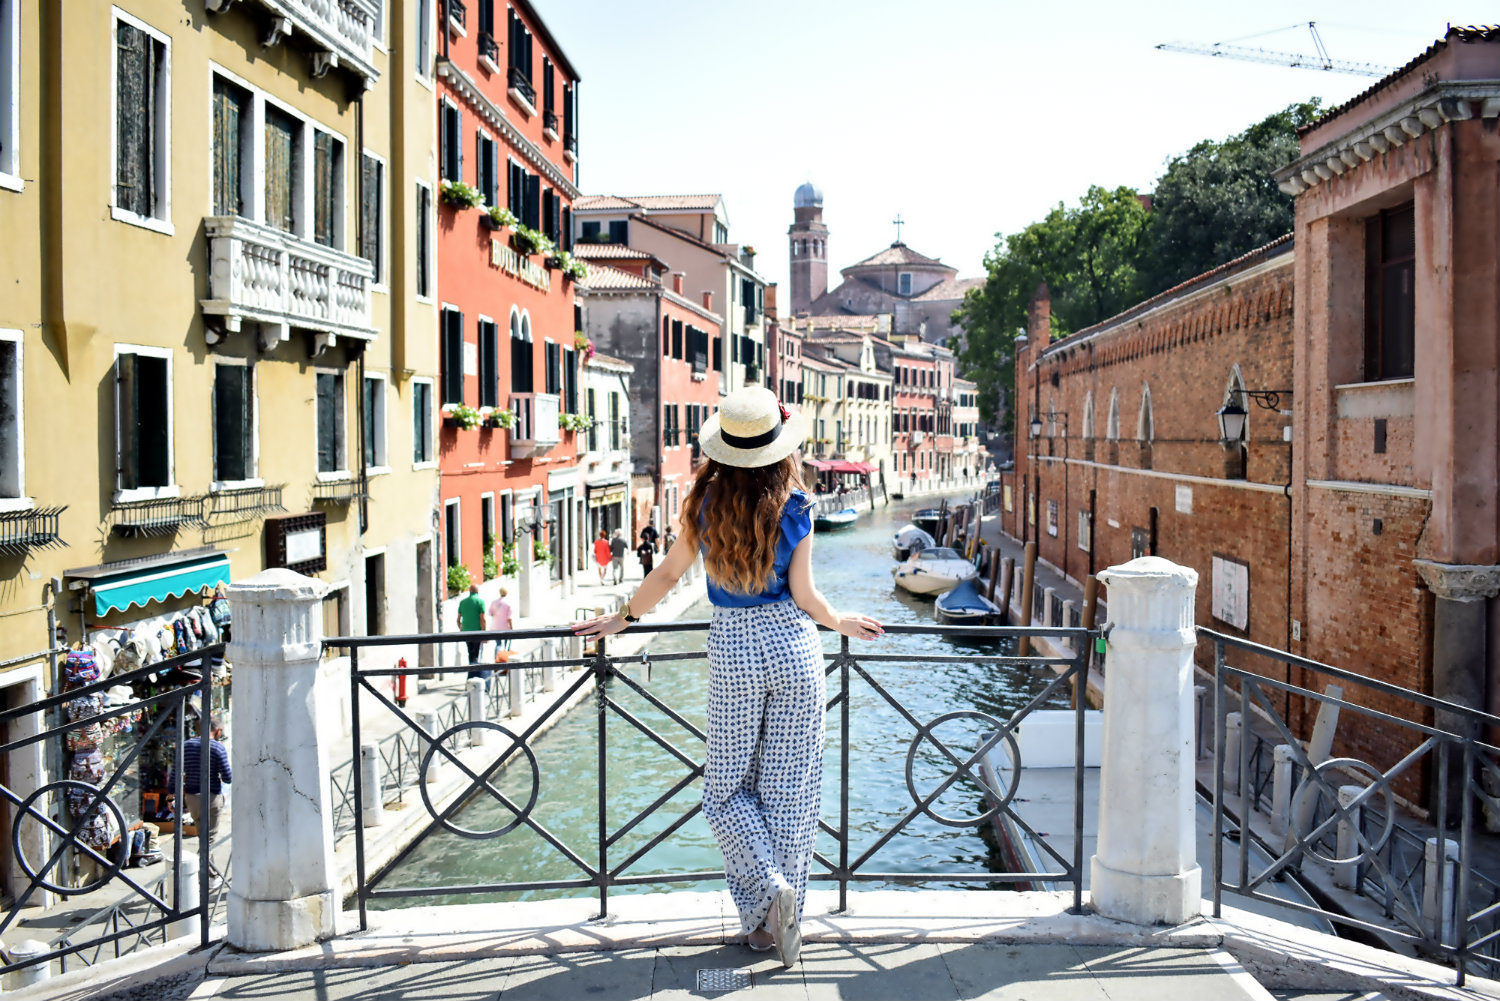 Outfit fuer sightseeing durch Venedig